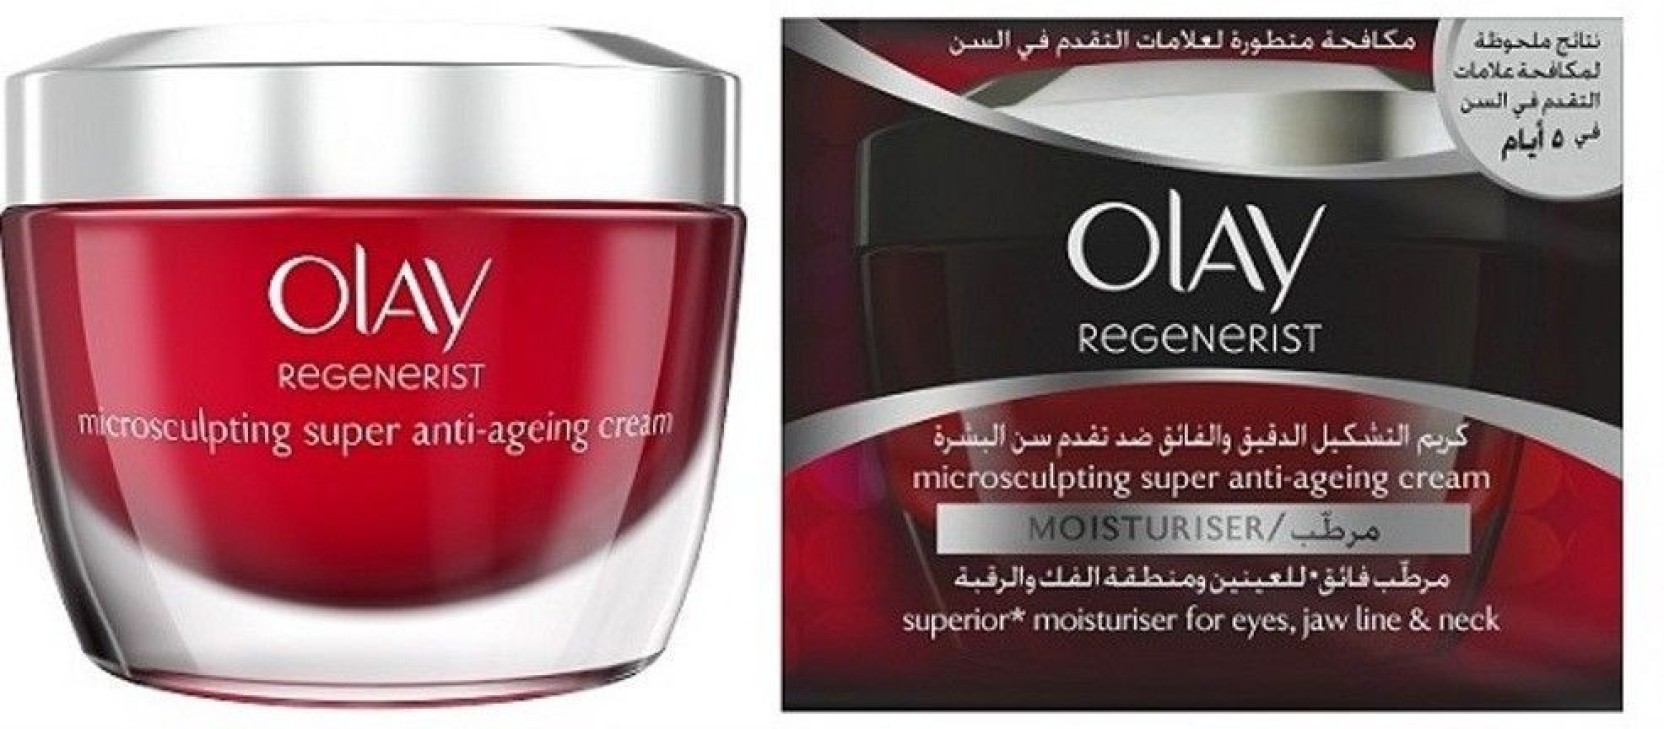 Olay Regenerist Microsculpting Anti Aging Cream 50 Ml Price In Micro Sclupting Serum By Share